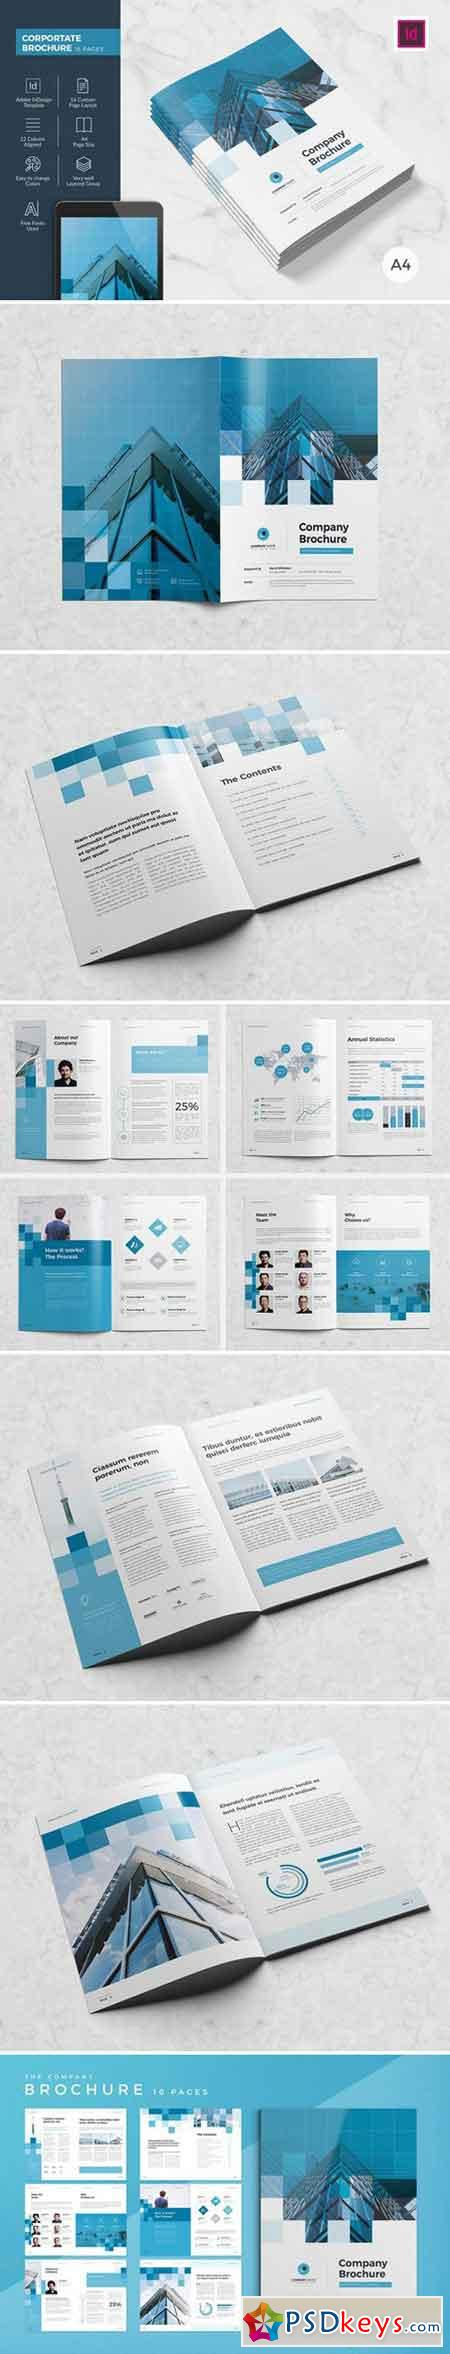 Corporate Brochure 16 Pages 2185636